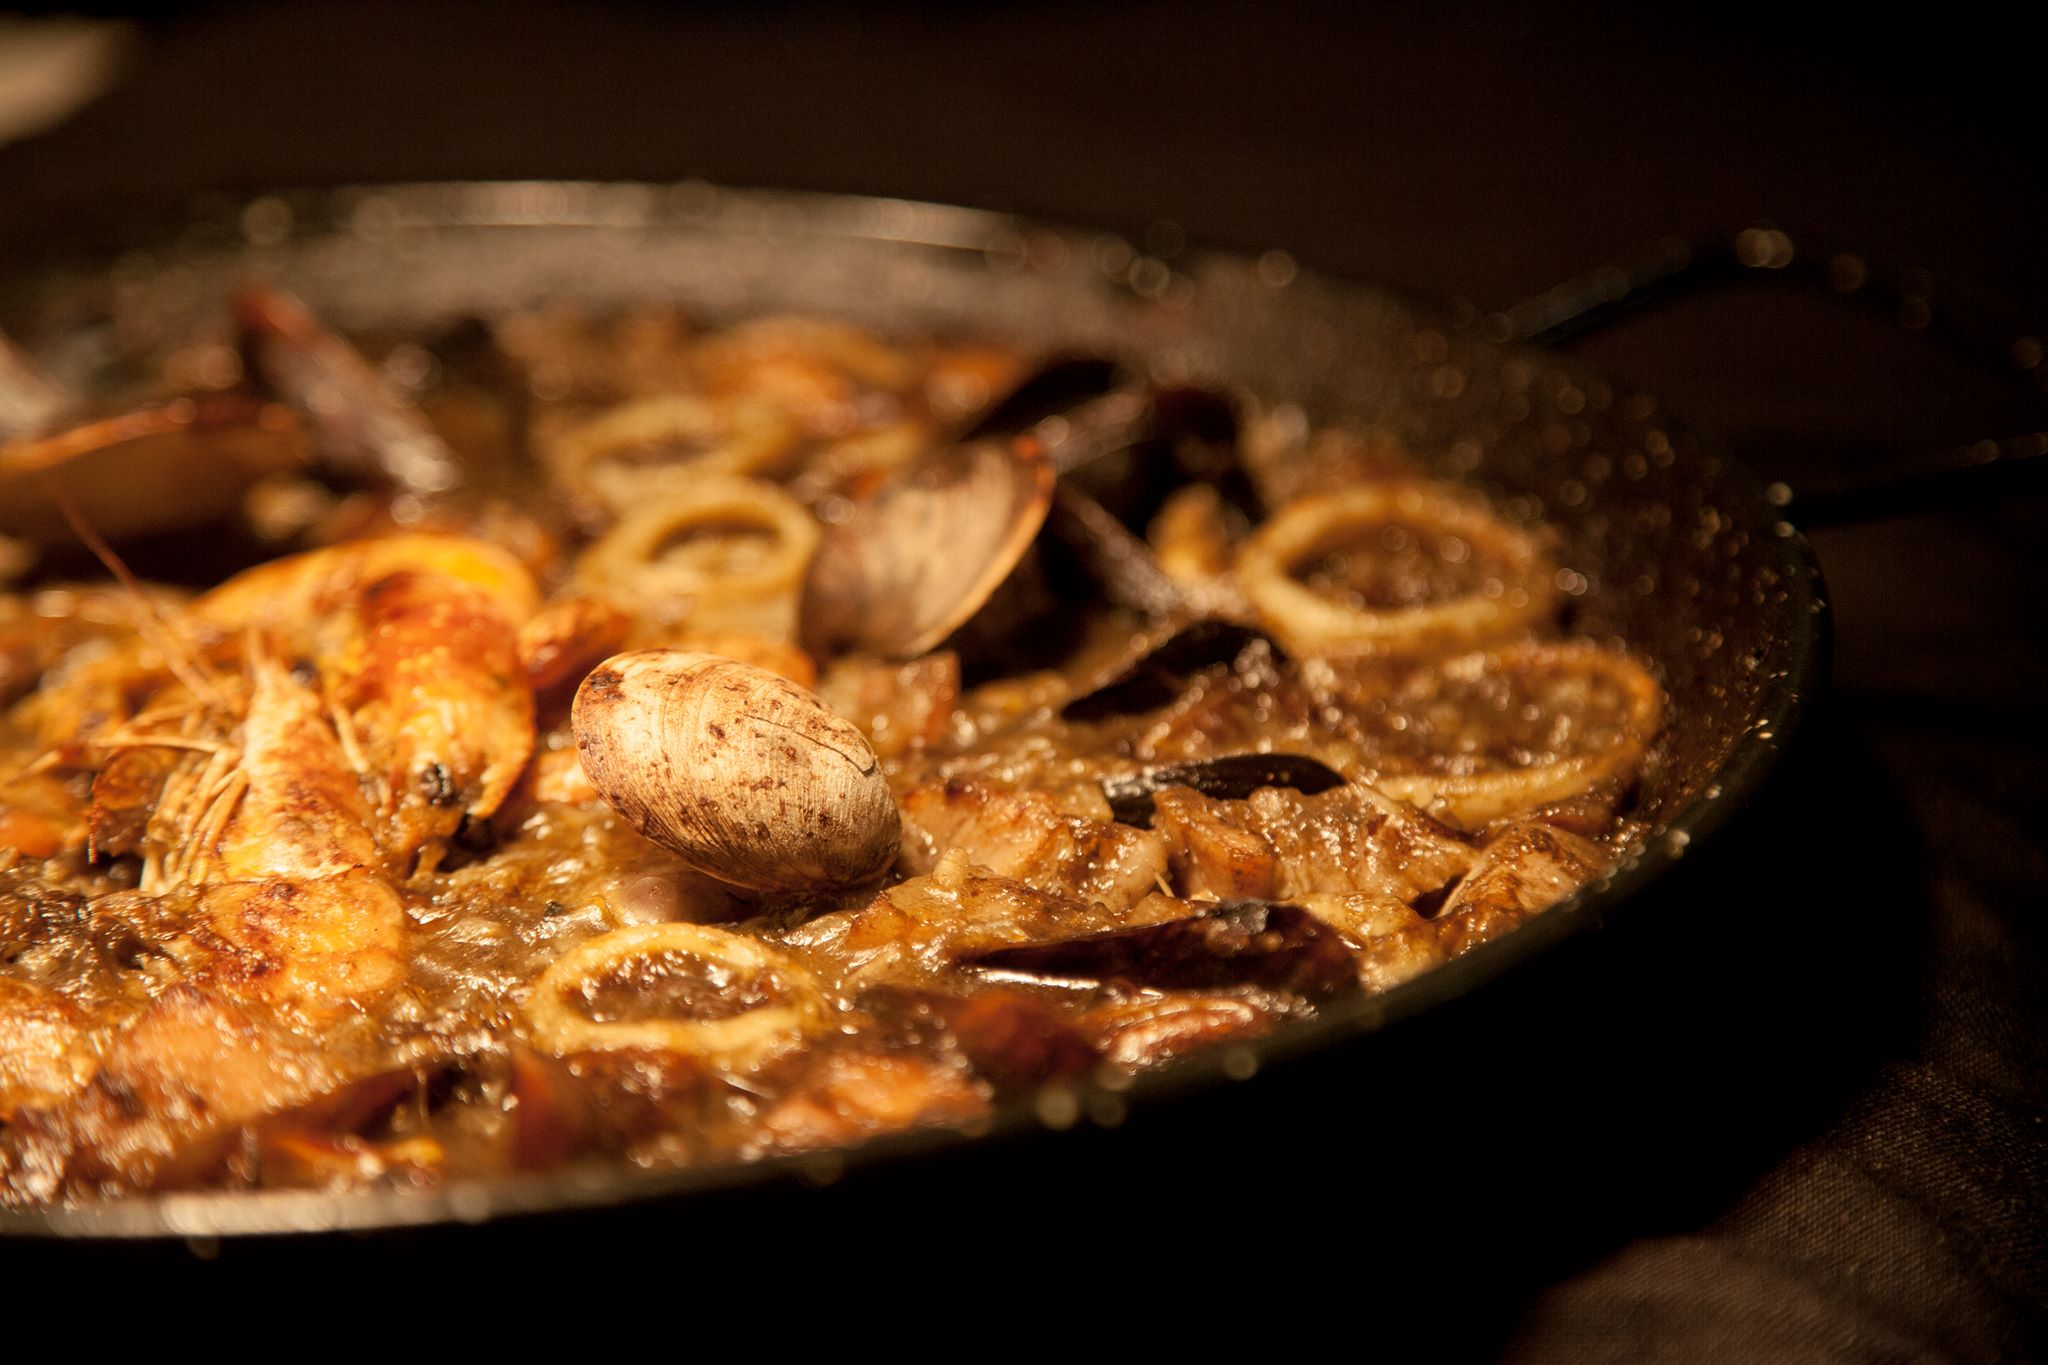 Give me an oven and I'll give you the crispiest Paella!!